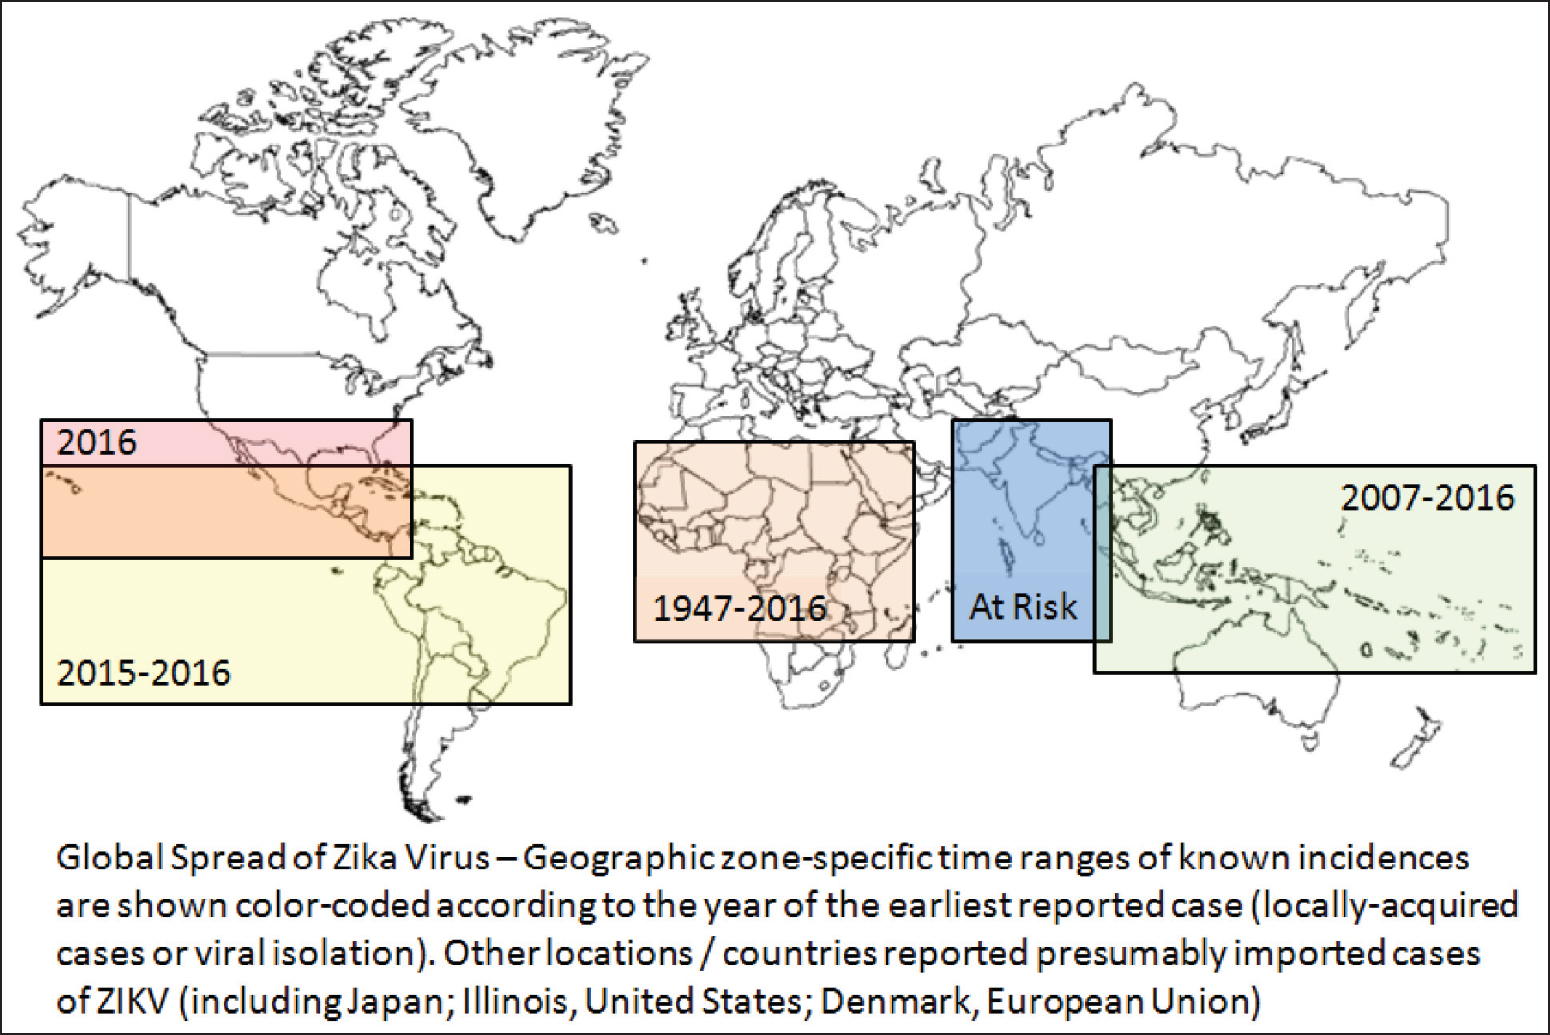 Figure 1: A schematic reconstruction of the geographic spread of the Zika virus. Note the temporal sequence of observed outbreaks, beginning with the initial events outside of Africa (e.g., Asia and Oceania) and ending with the most recent reports (e.g., South America, Mesoamerica and Southern United States)<sup>[1-17]</sup>